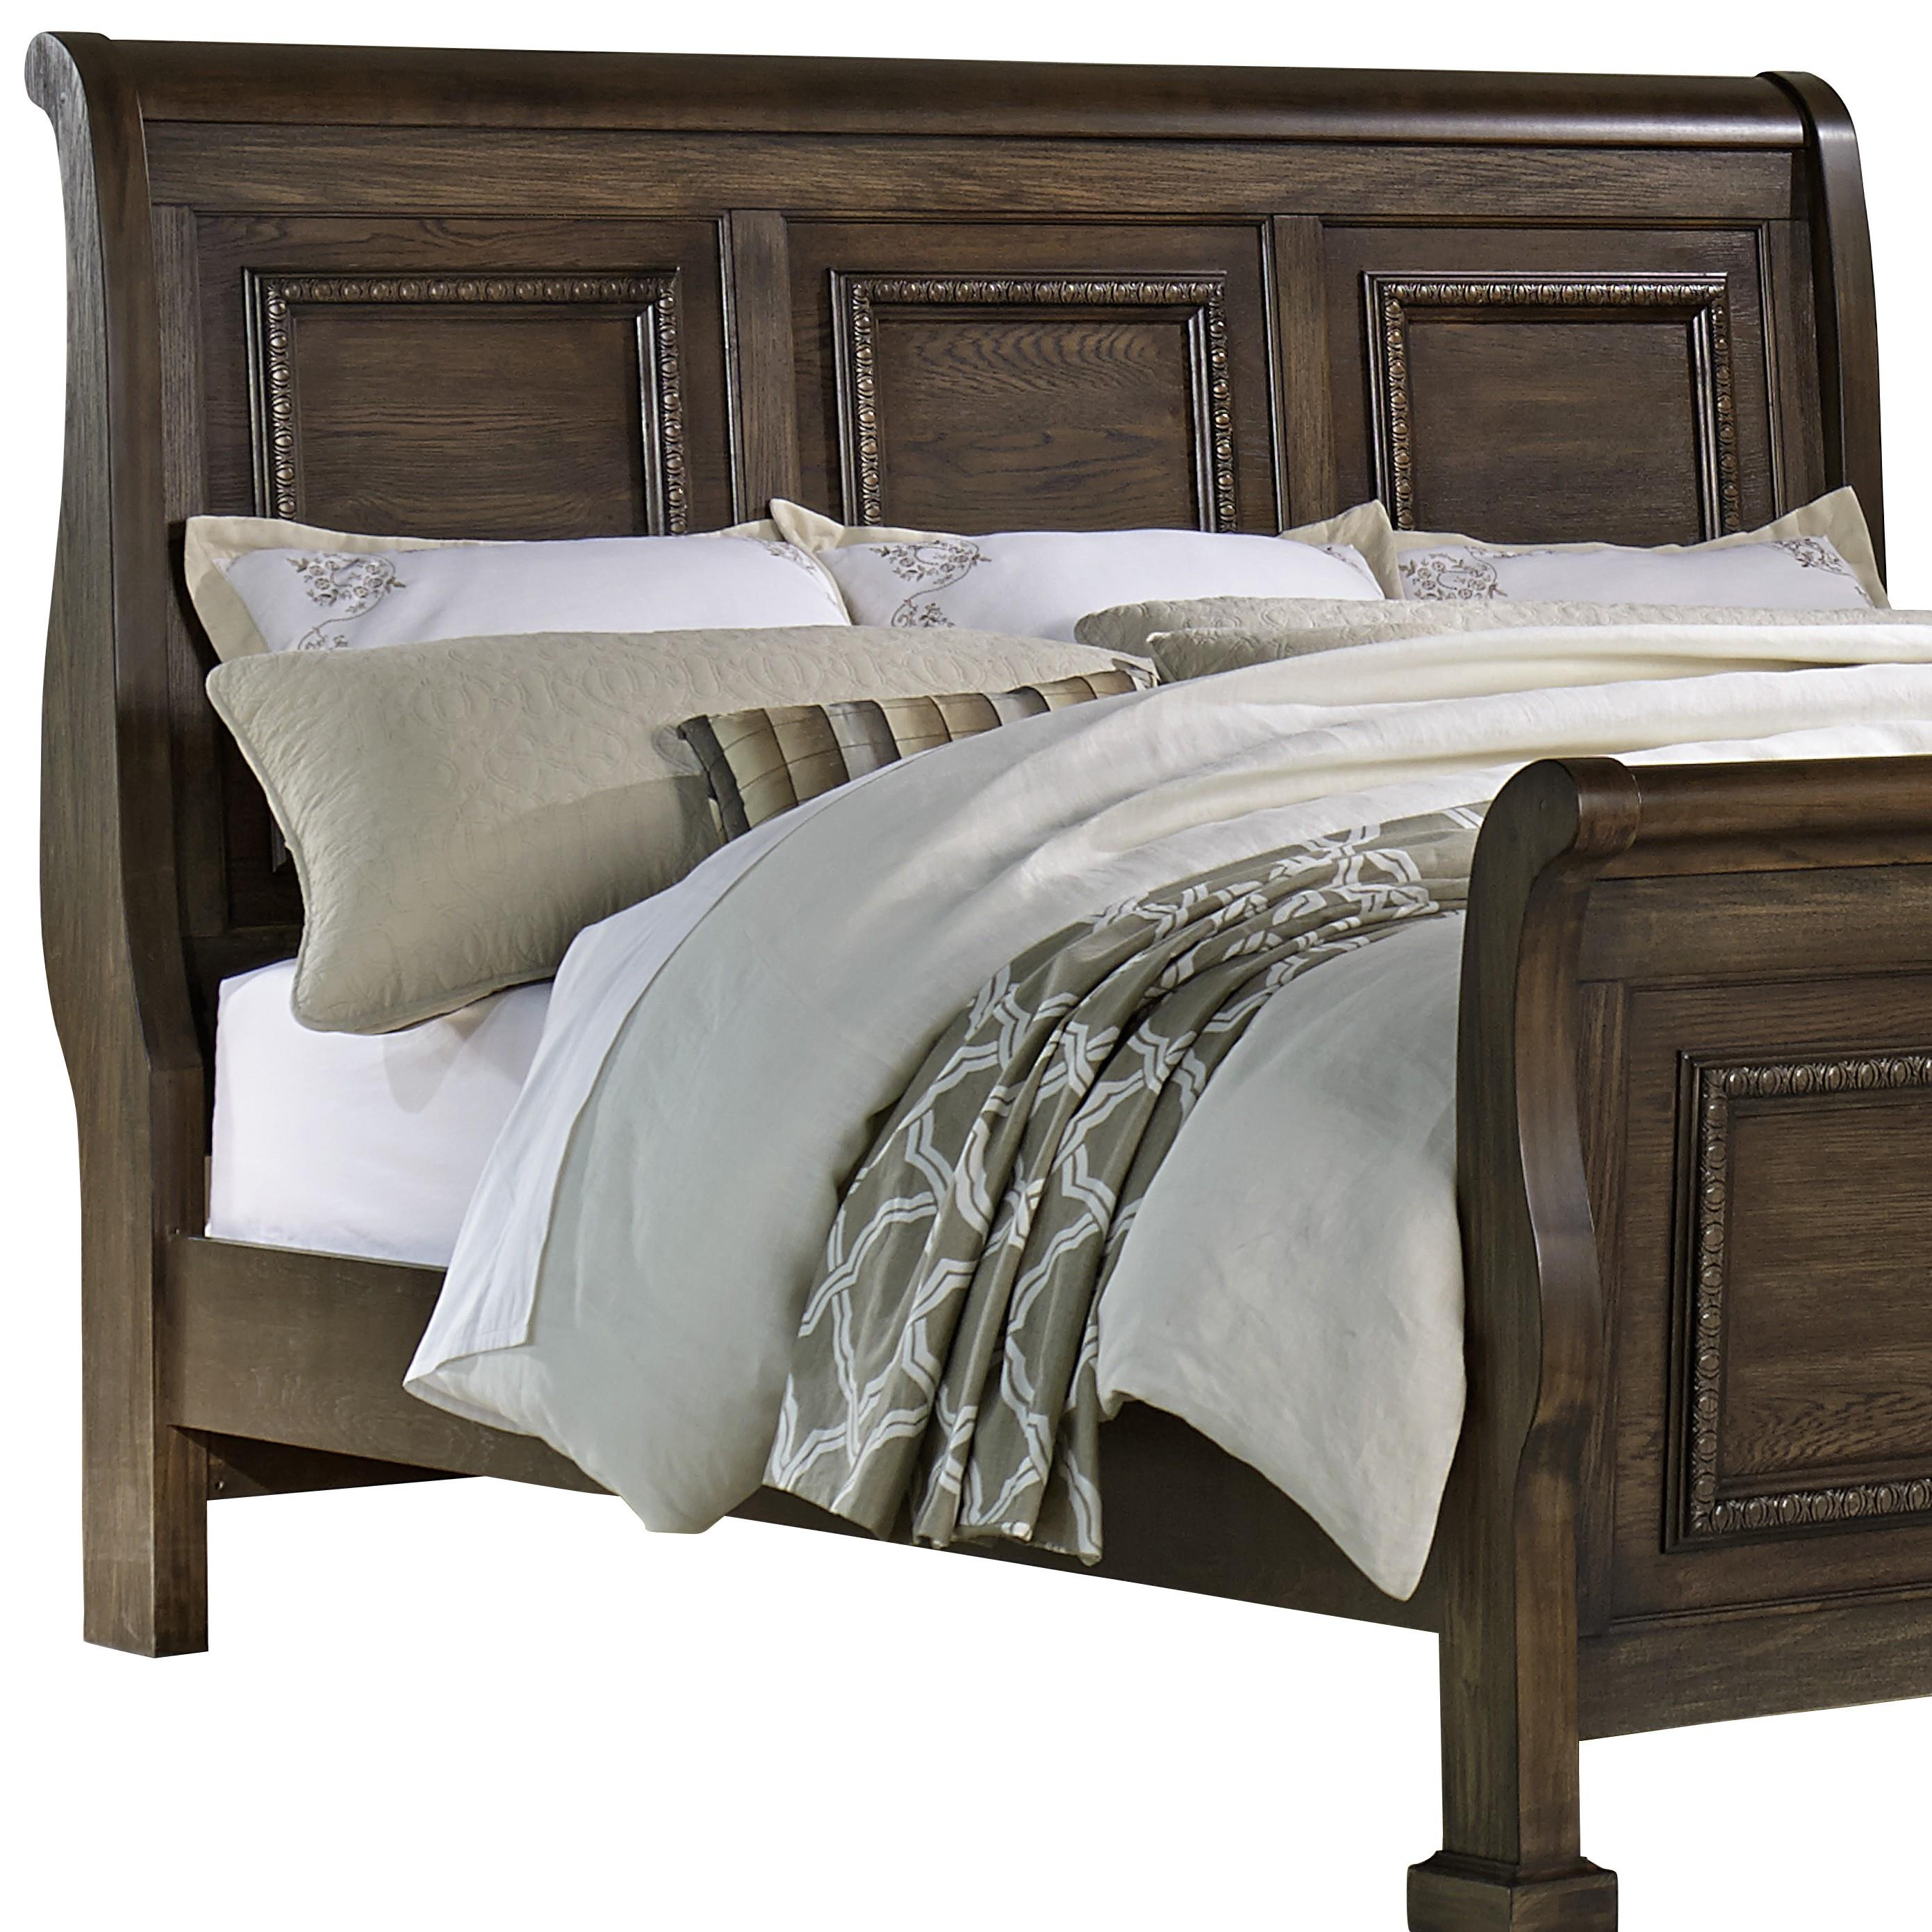 Vaughan Bassett Affinity Queen Sleigh Headboard - Item Number: 560-553